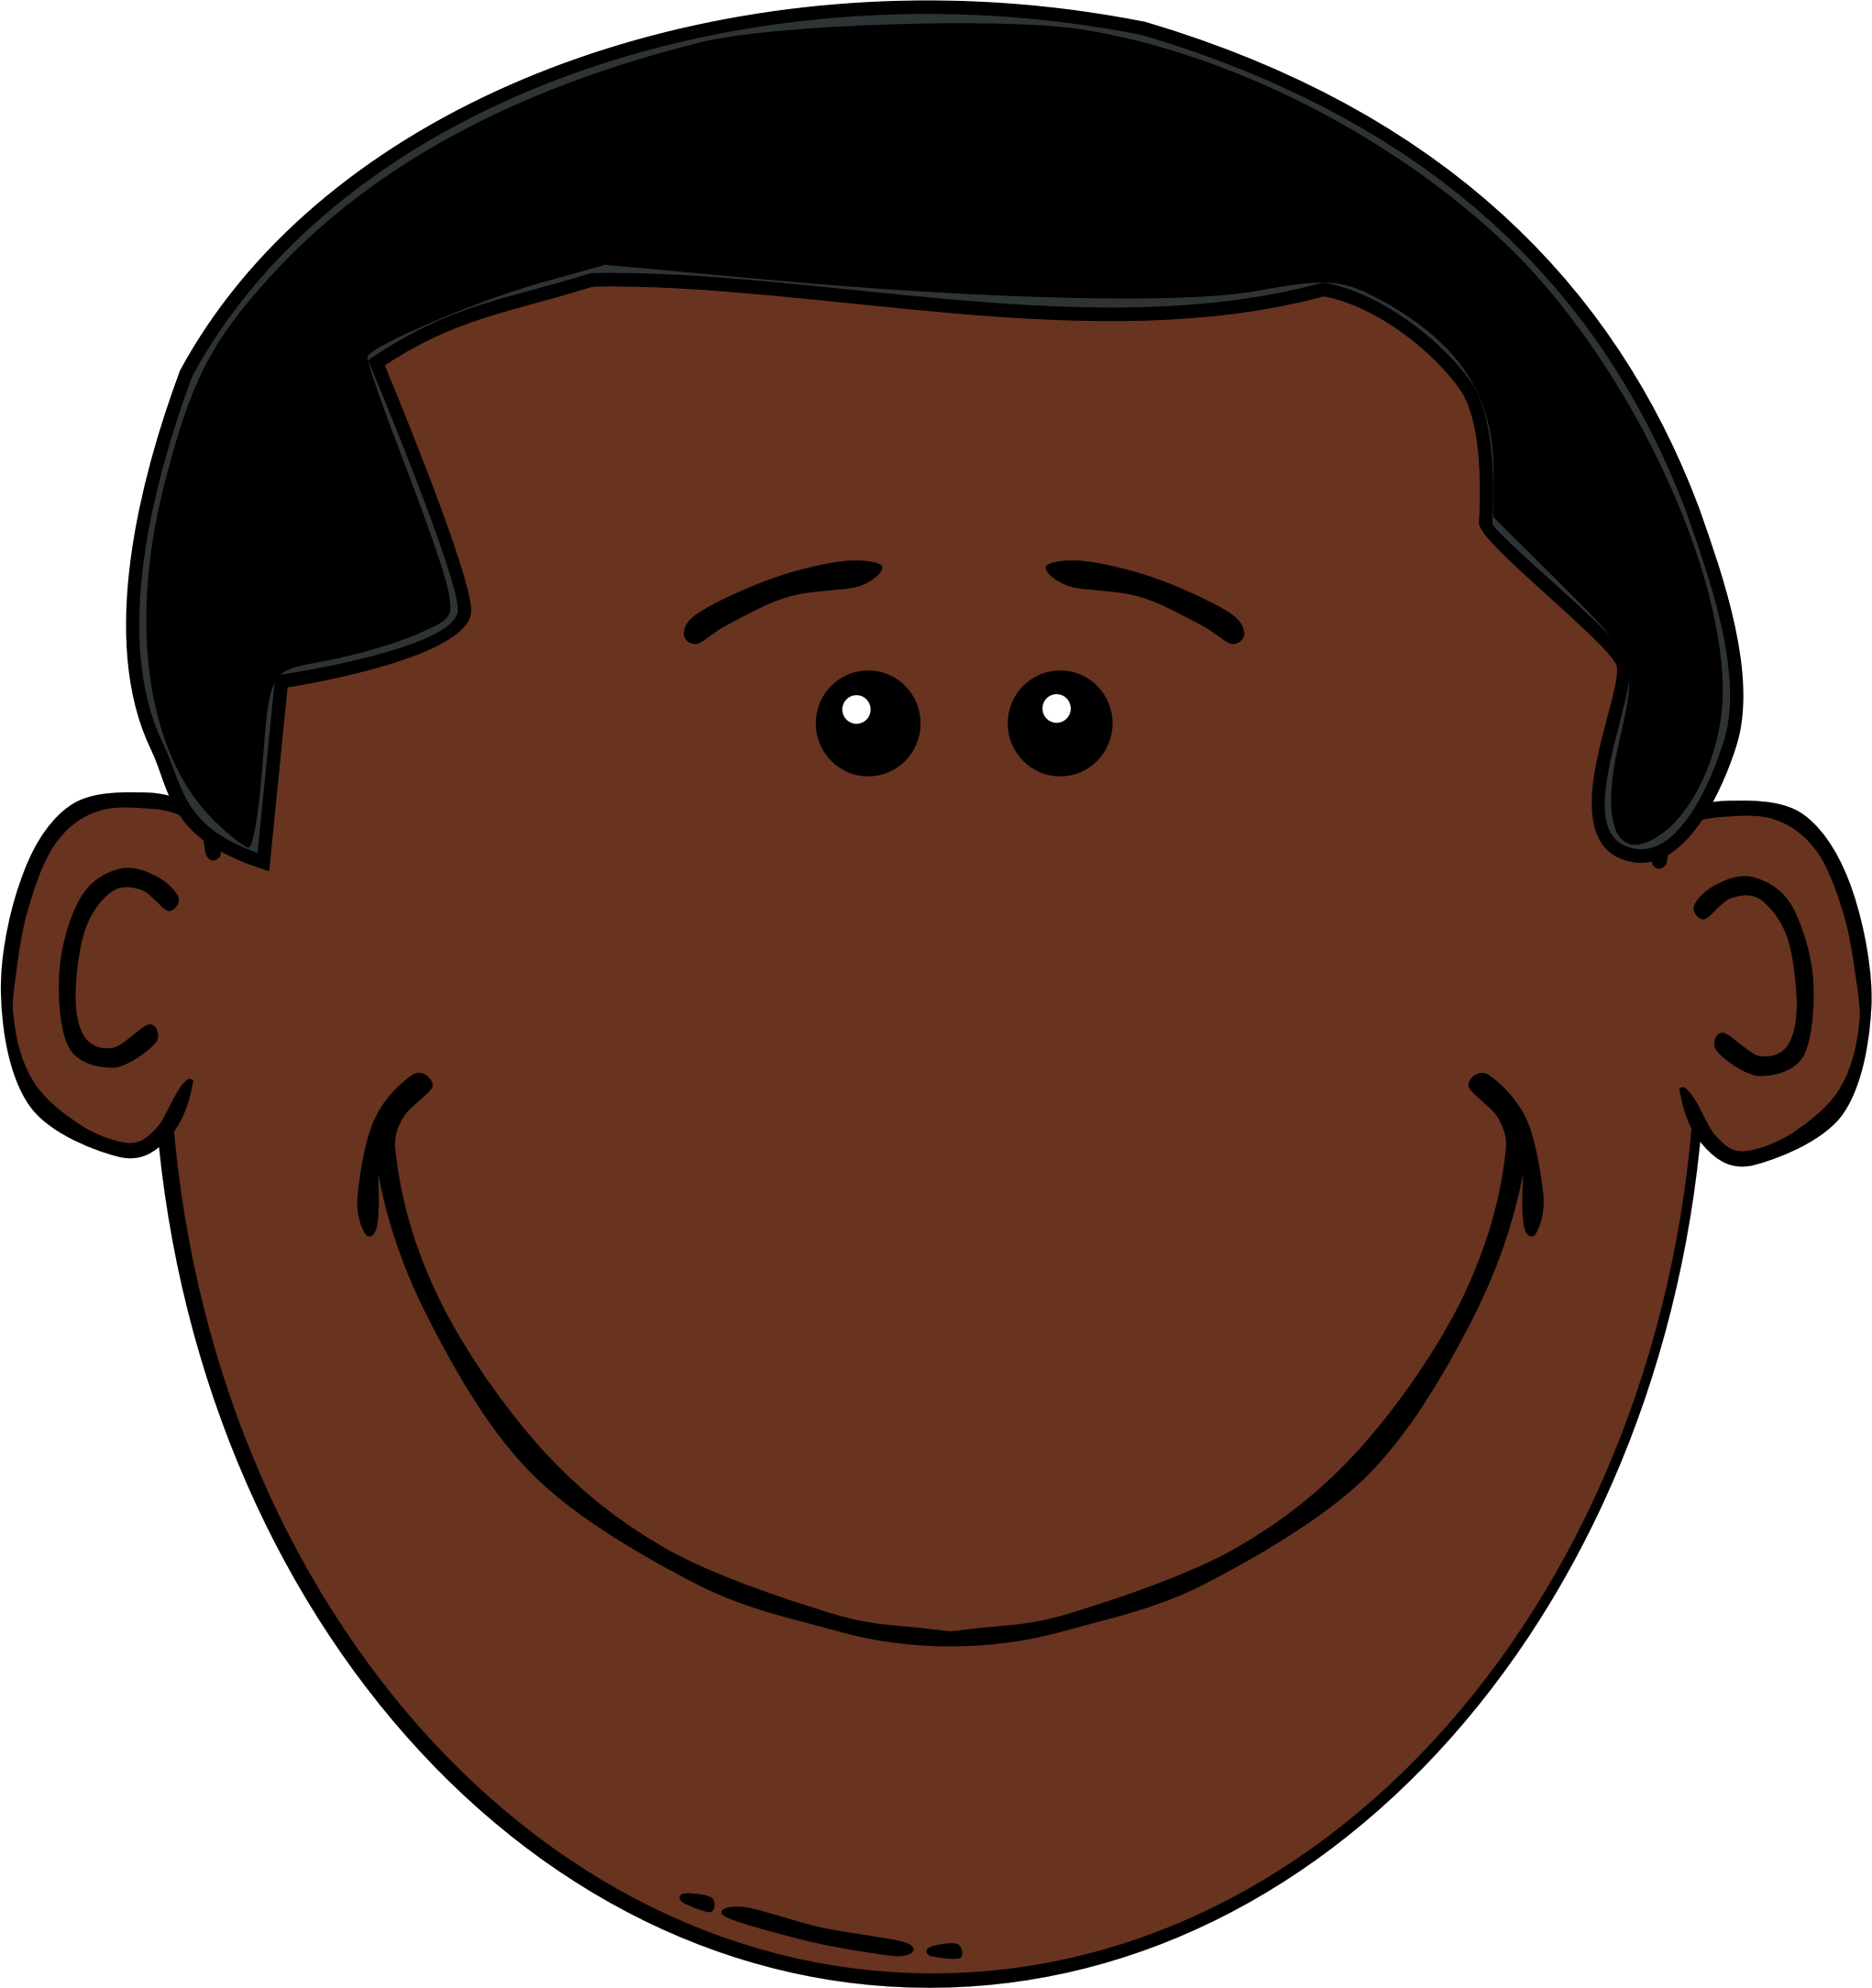 Nose clipart african american, Nose african american.